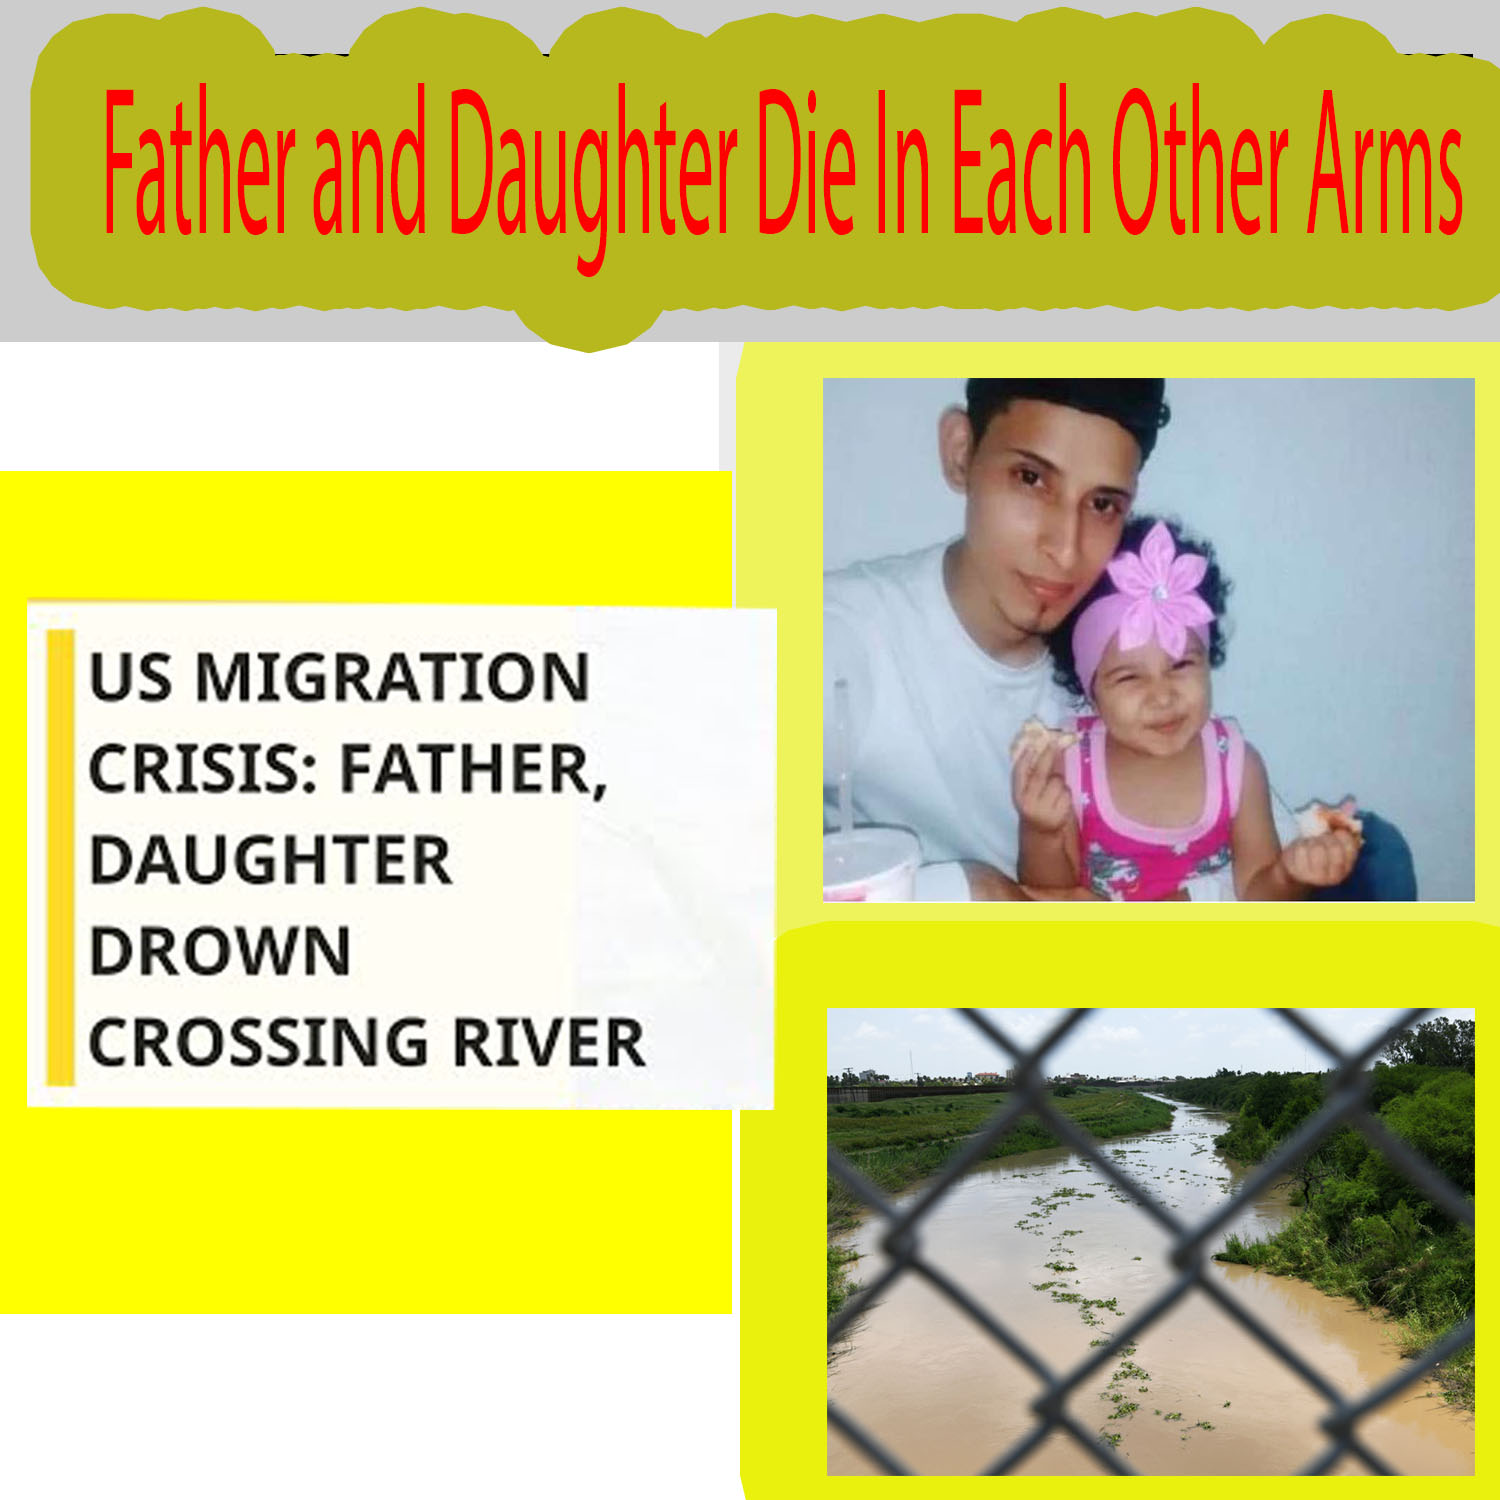 photograph of a drowned father and daughter migrants